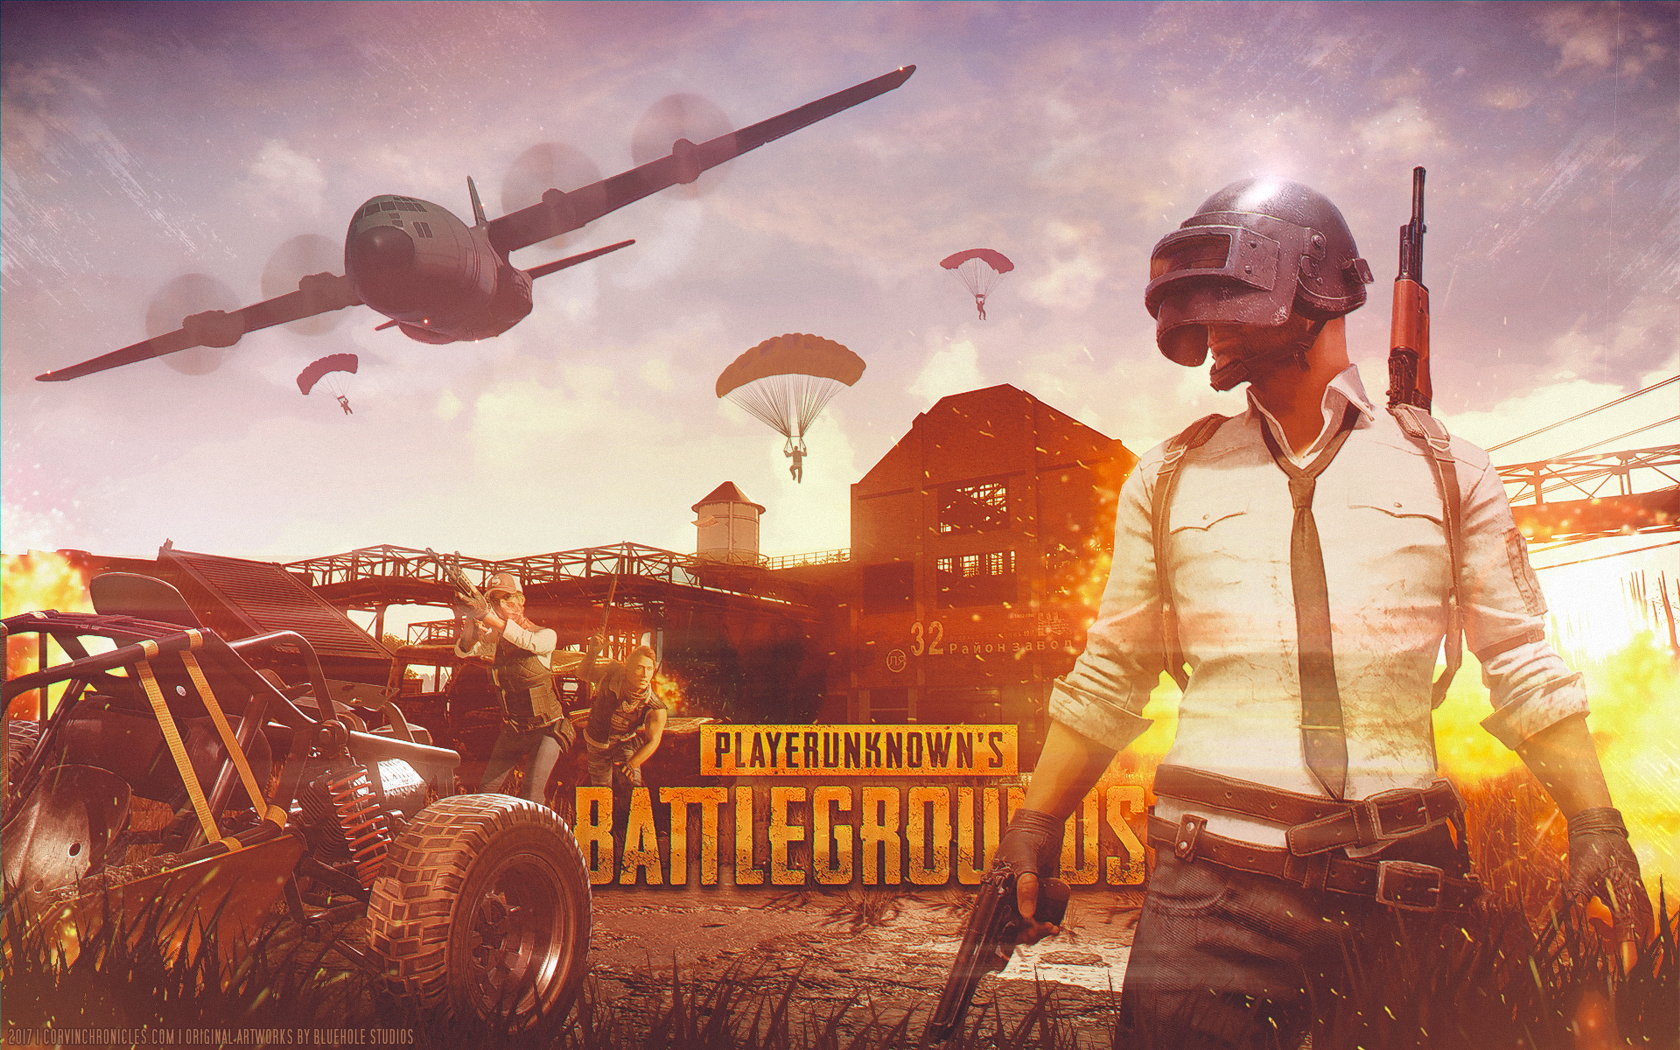 Pubg Fondo De Pantalla Hd: PlayerUnknown's Battlegrounds